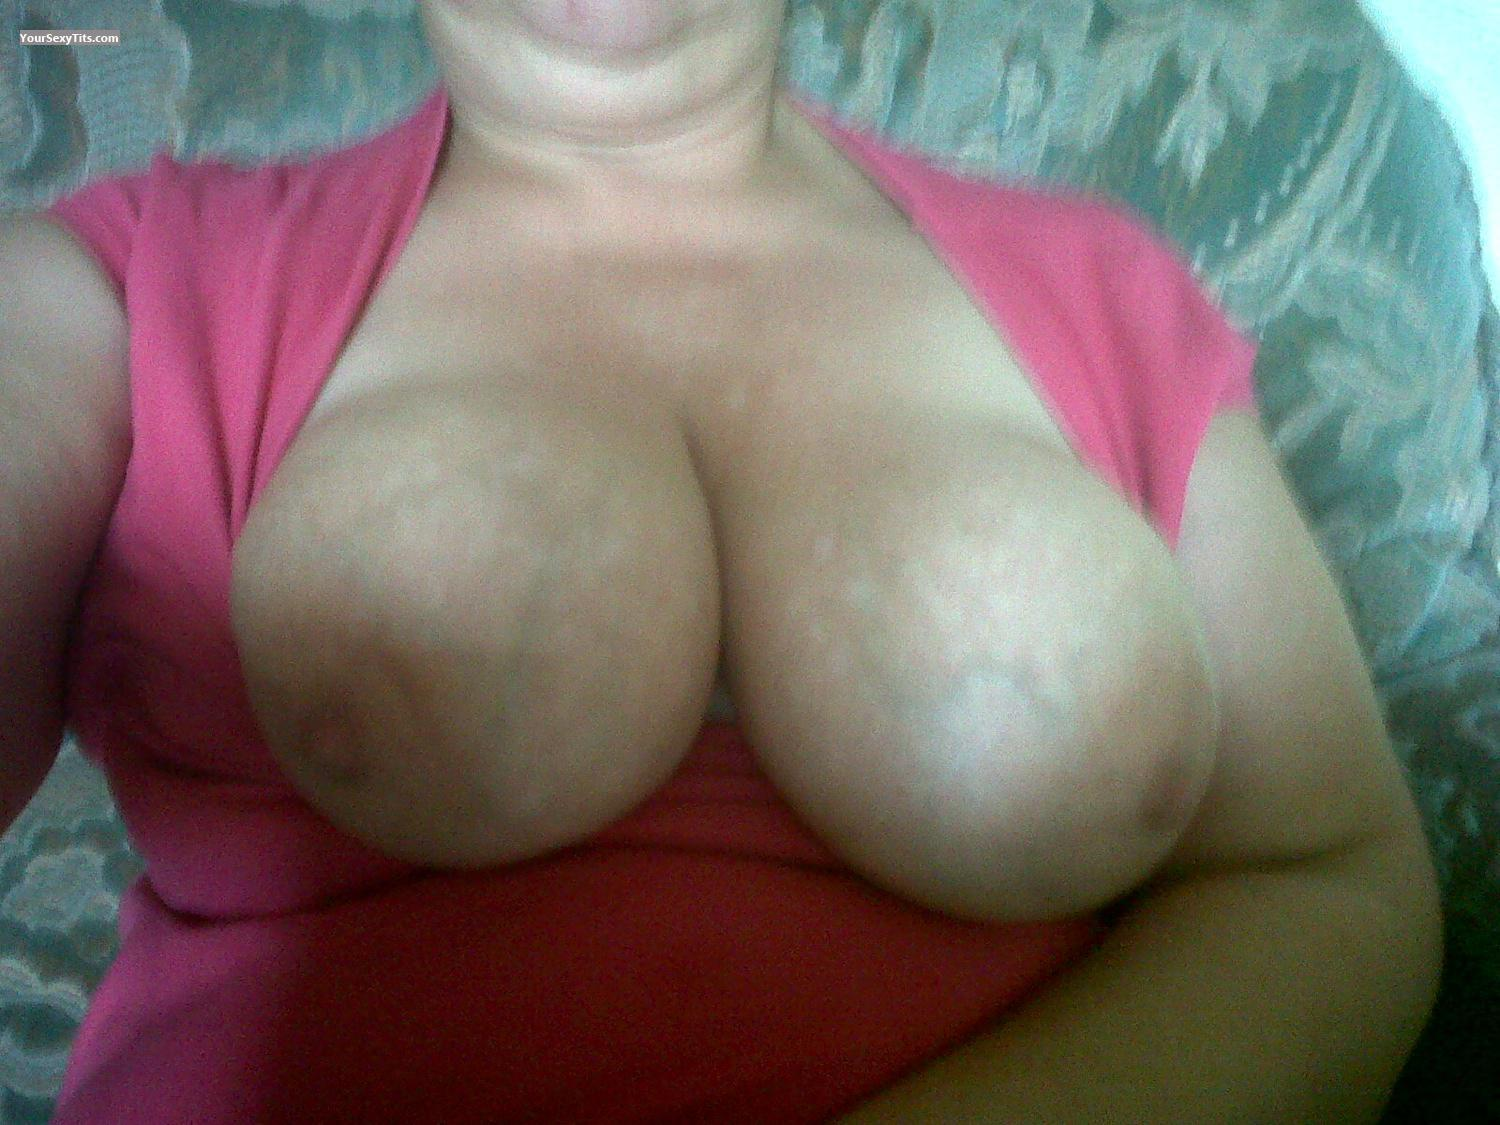 My Big Tits Selfie by Hot Girl